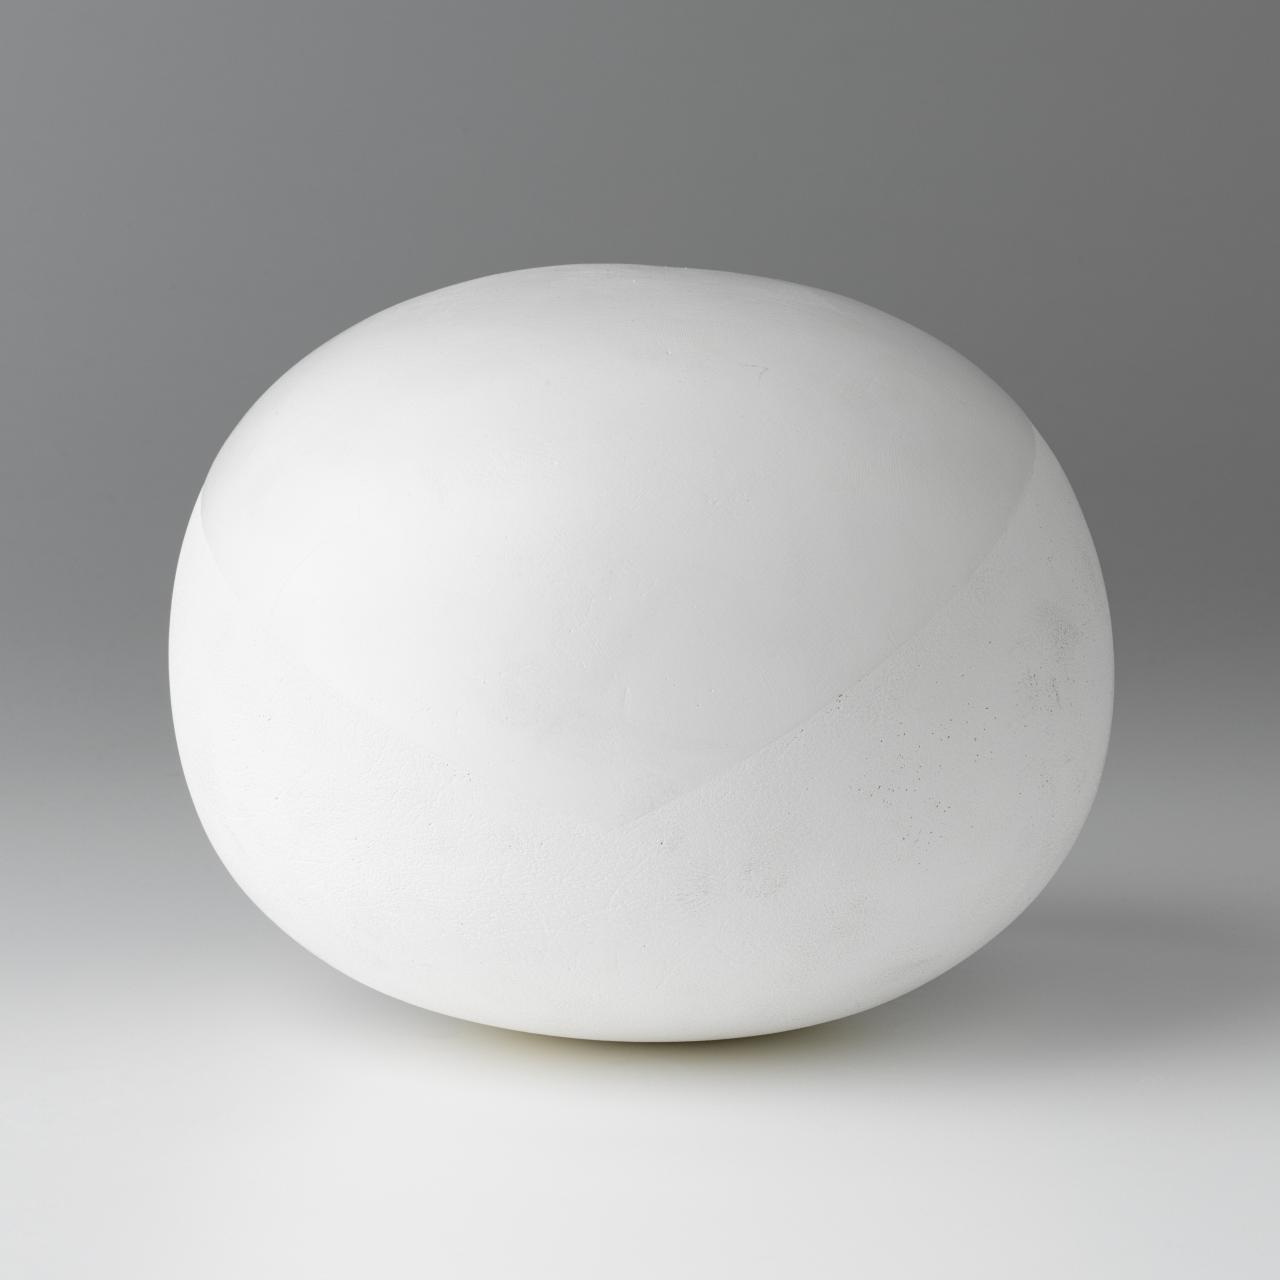 Spherical form